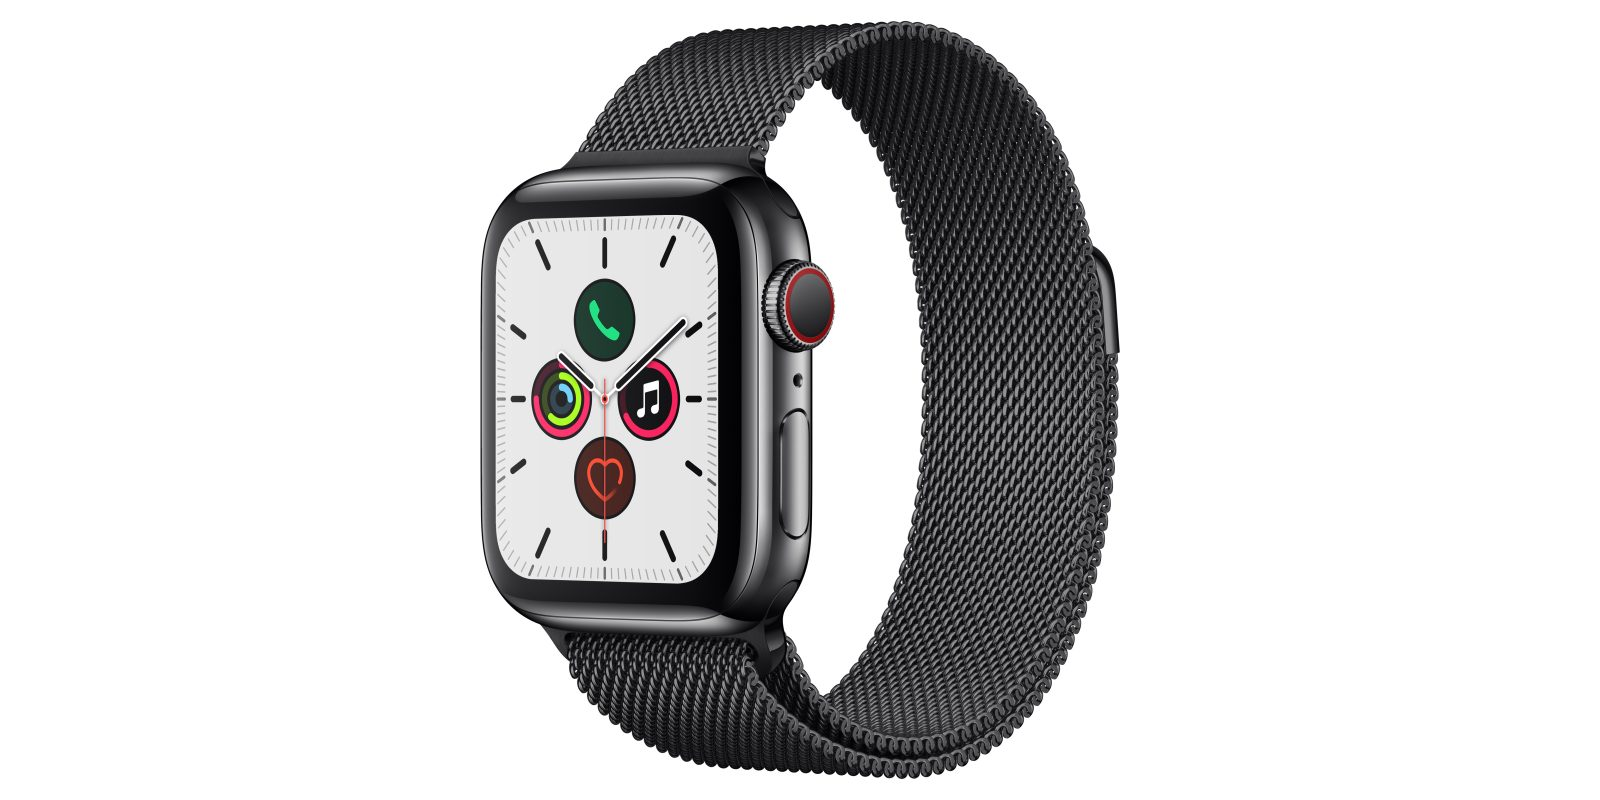 Apple Watch Series 5 deals take up to $187 off, HomeKit tech, Arlo cameras, more on sale